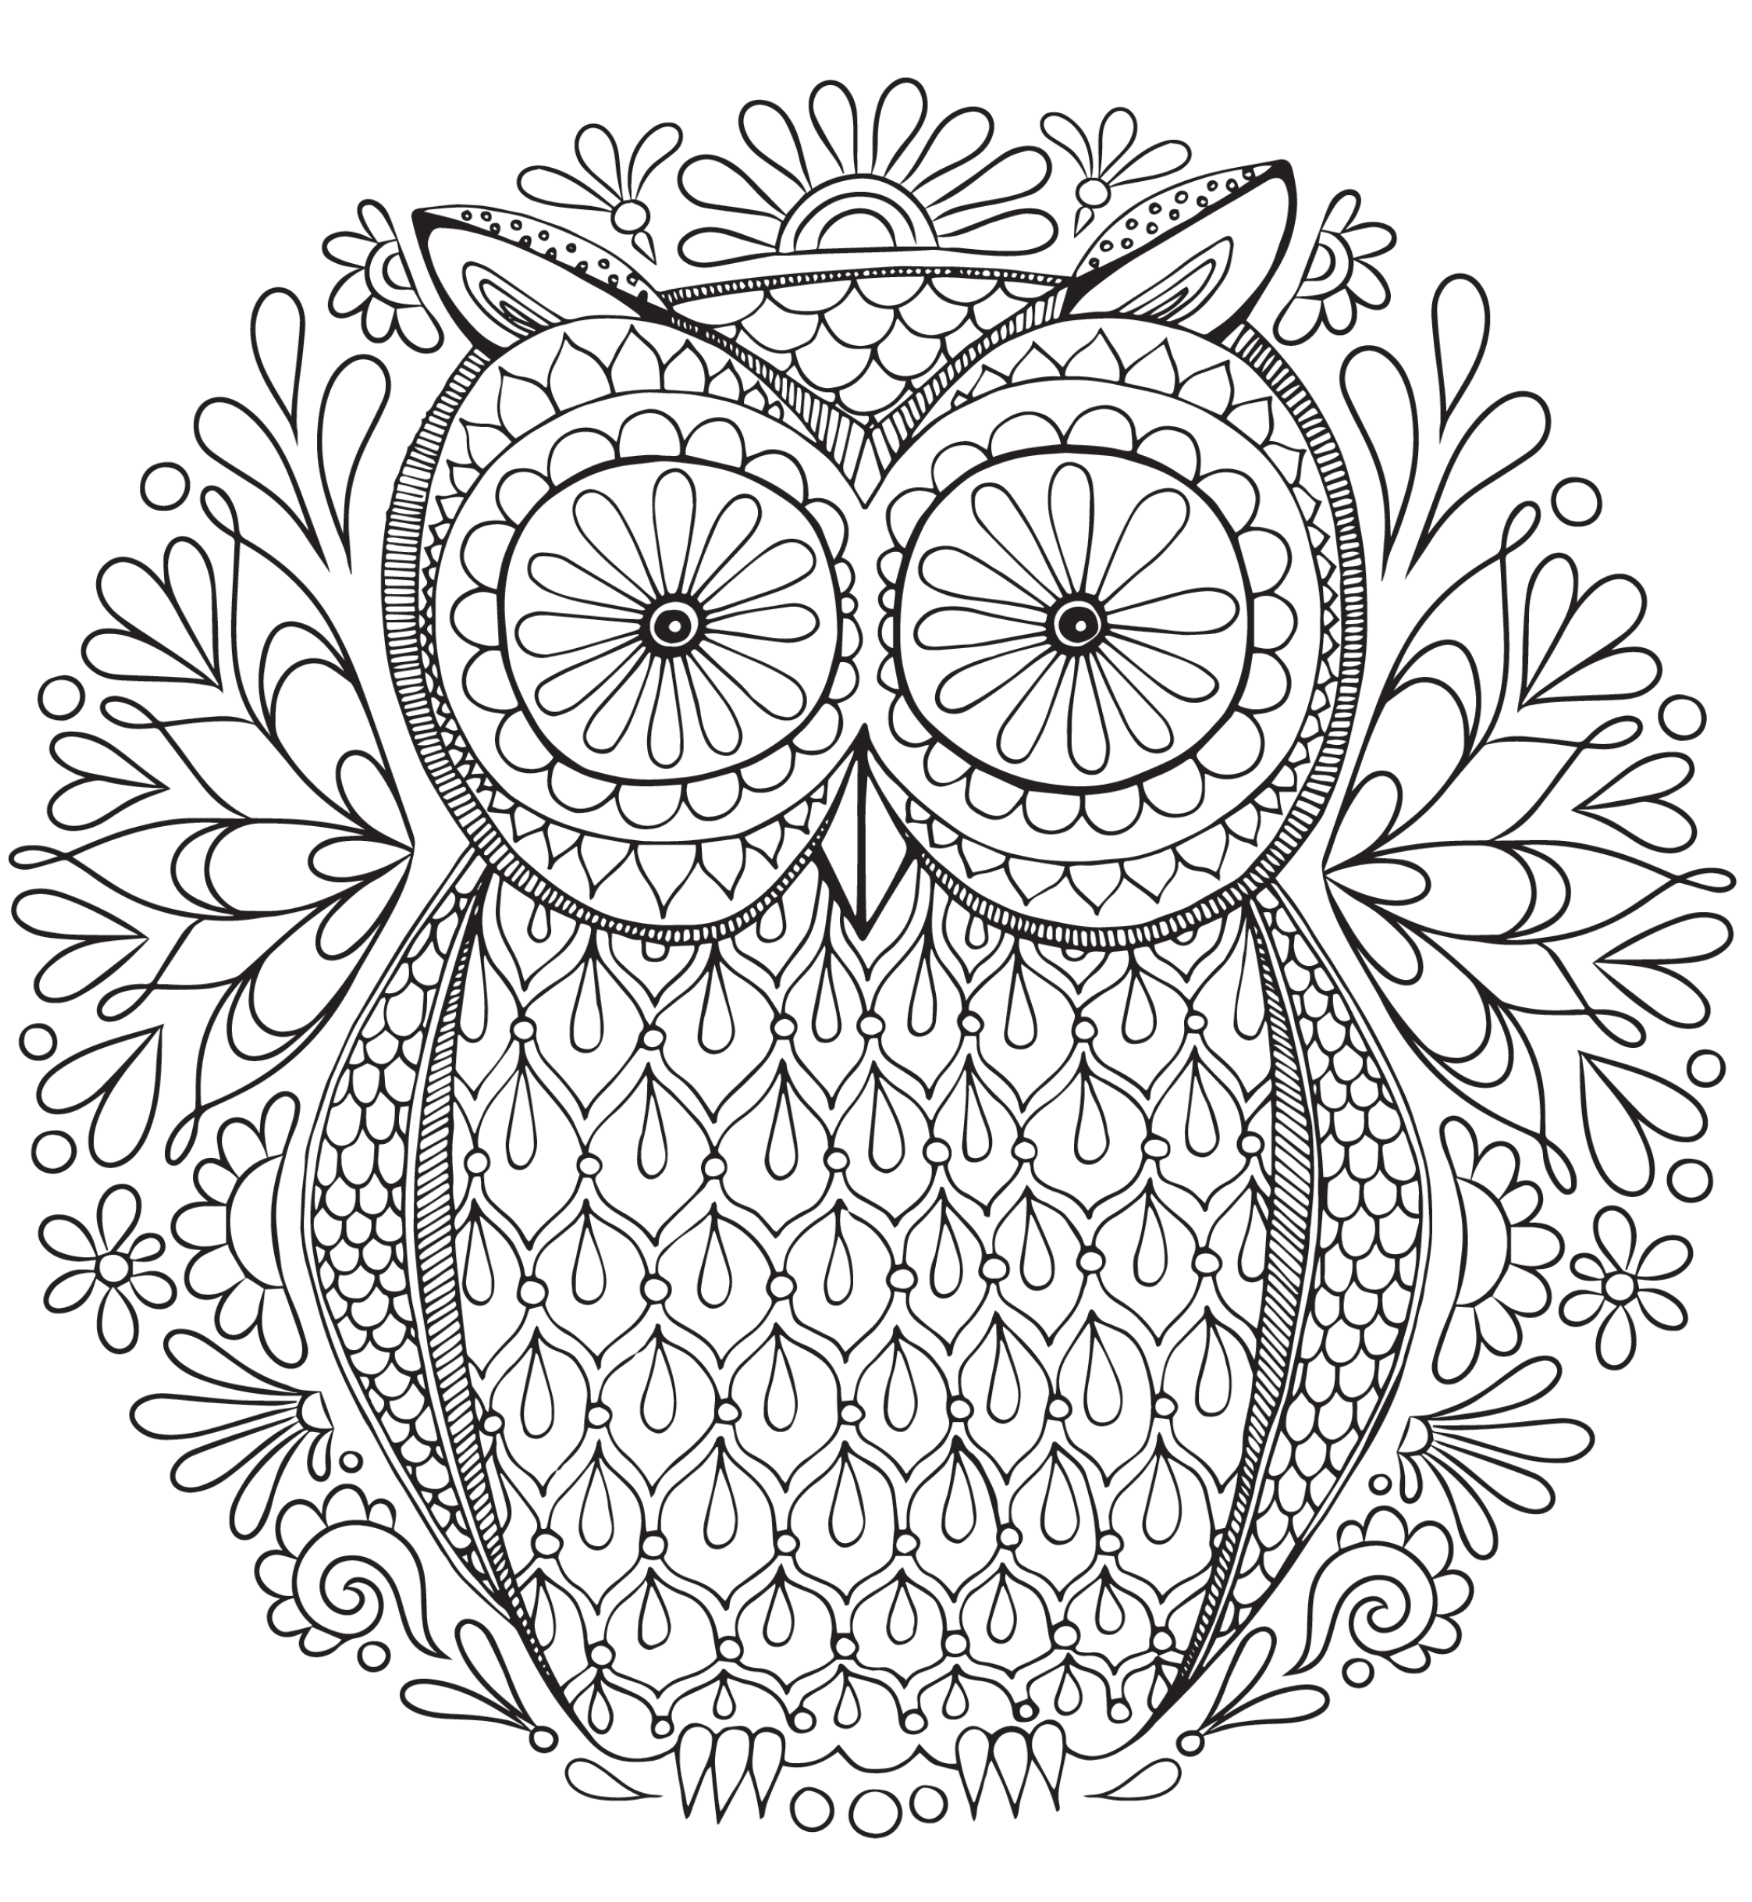 Coloring Pages For Adults: 20+ Free Adult Colouring Pages